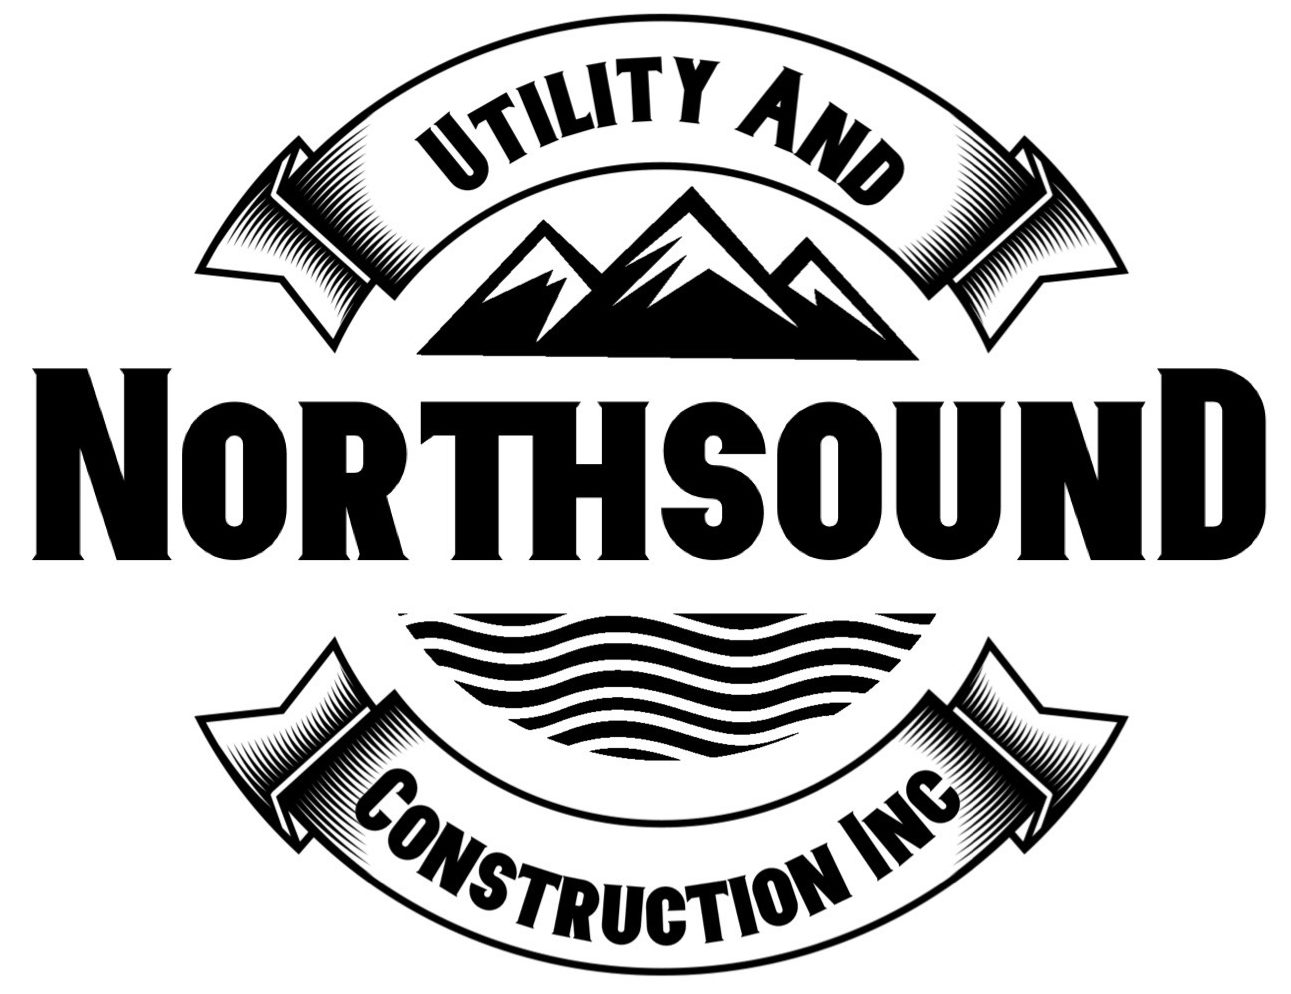 NORTHSOUND UTILITY AND CONSTRUCTION, INC